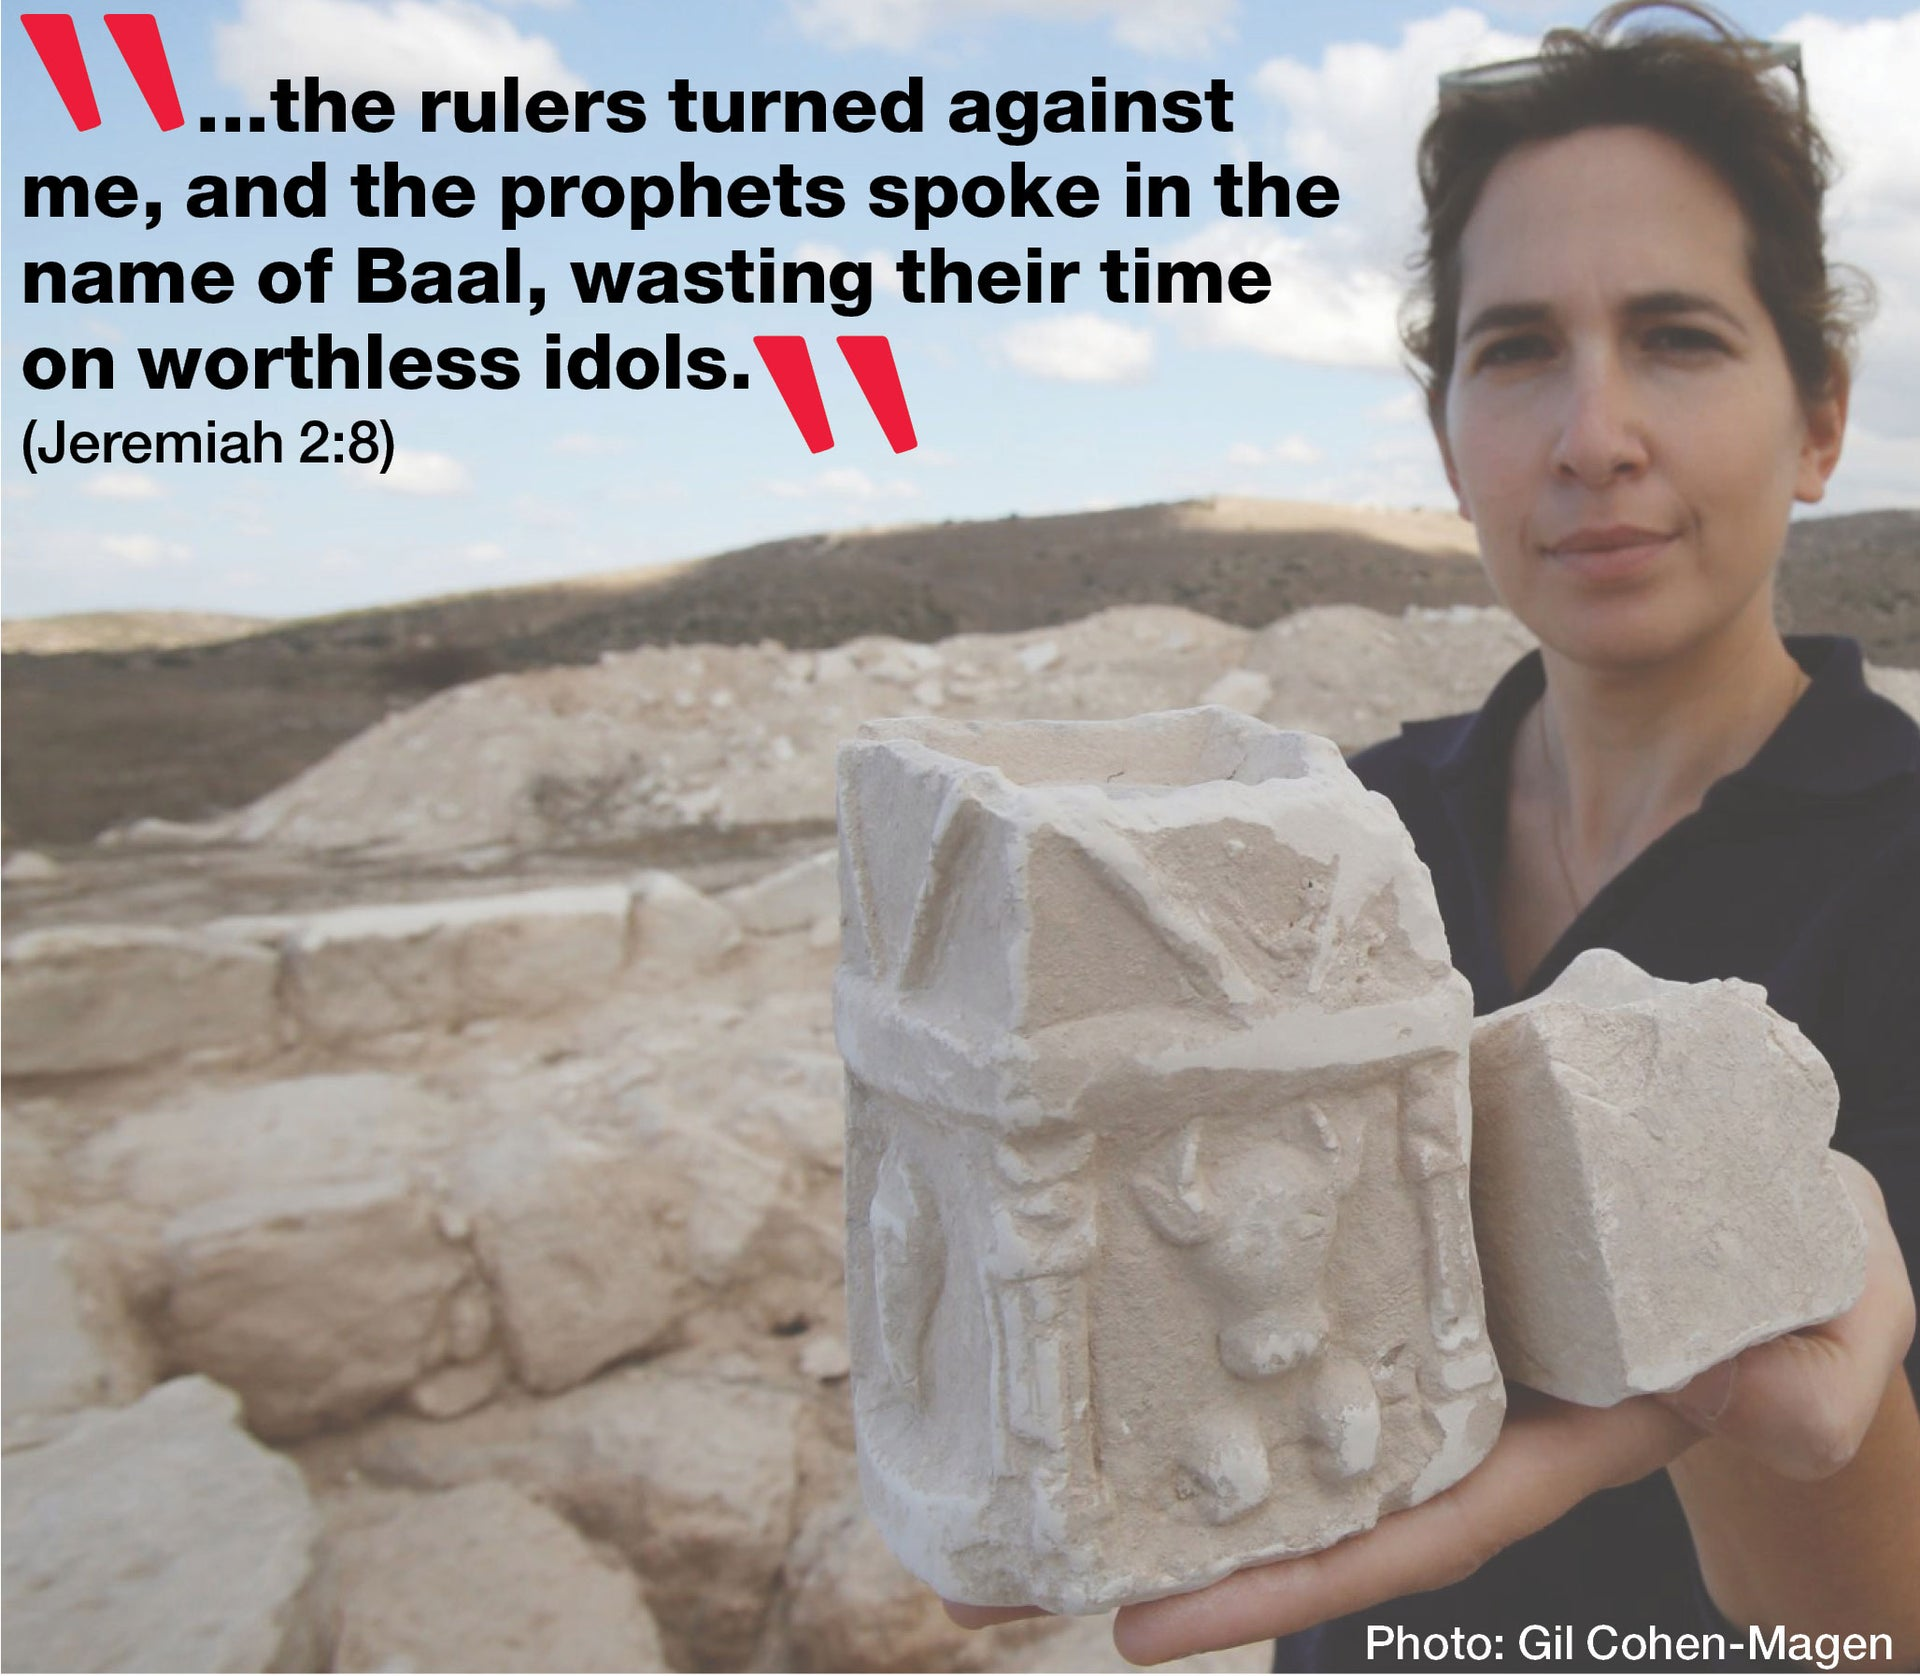 ...the rulers turned against  me, and the prophets spoke in the name of Baal, wasting their time  on worthless idols.